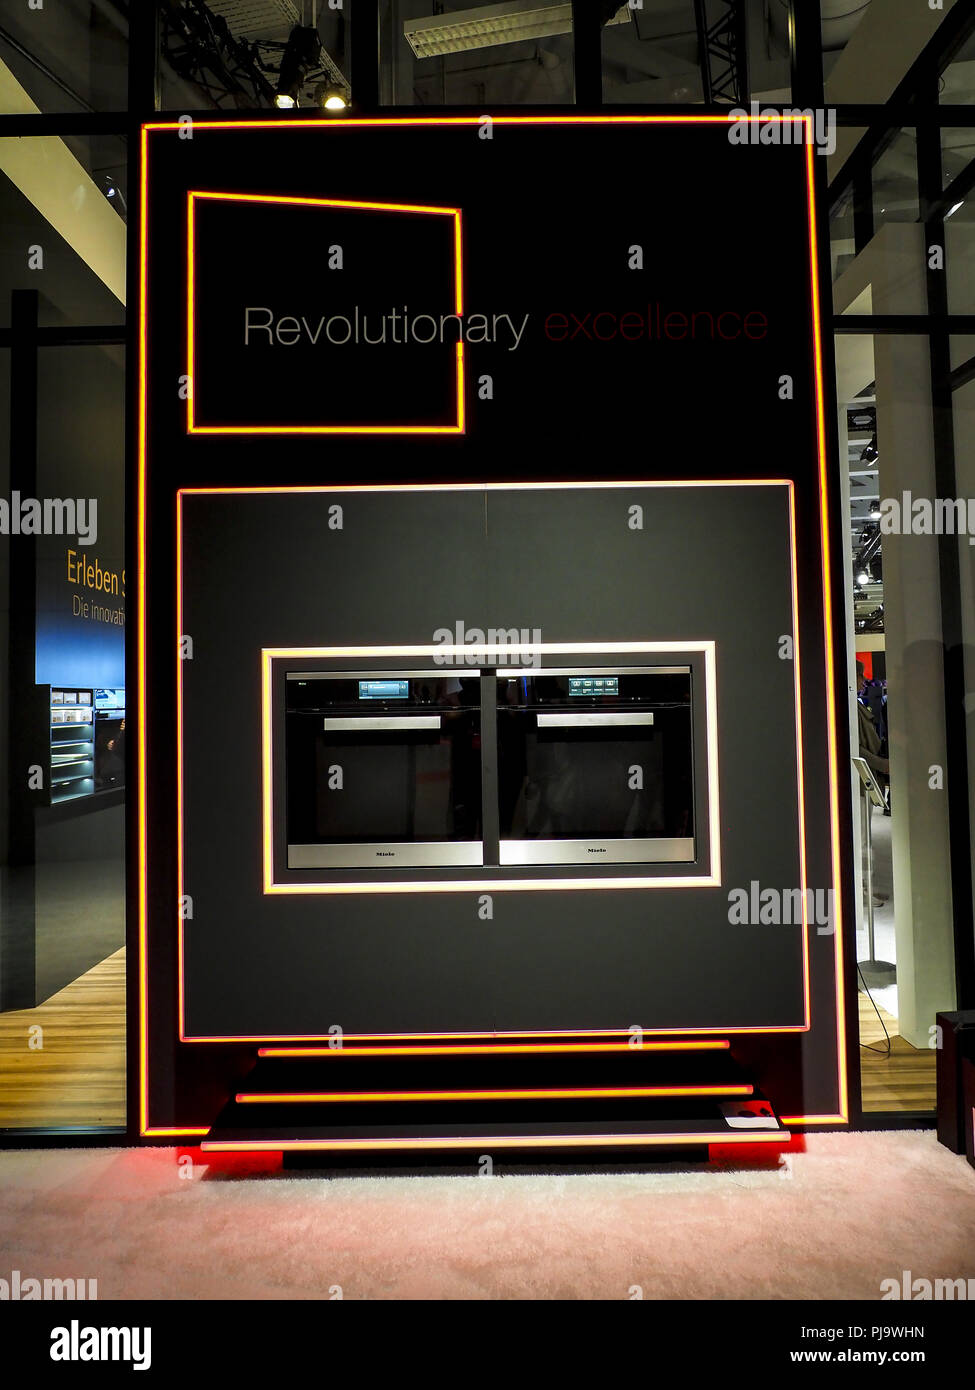 Miele Neuheiten 2018 : miele ifa 2018 berlin internationale funkaustellung stock photo 217805889 alamy ~ Aude.kayakingforconservation.com Haus und Dekorationen